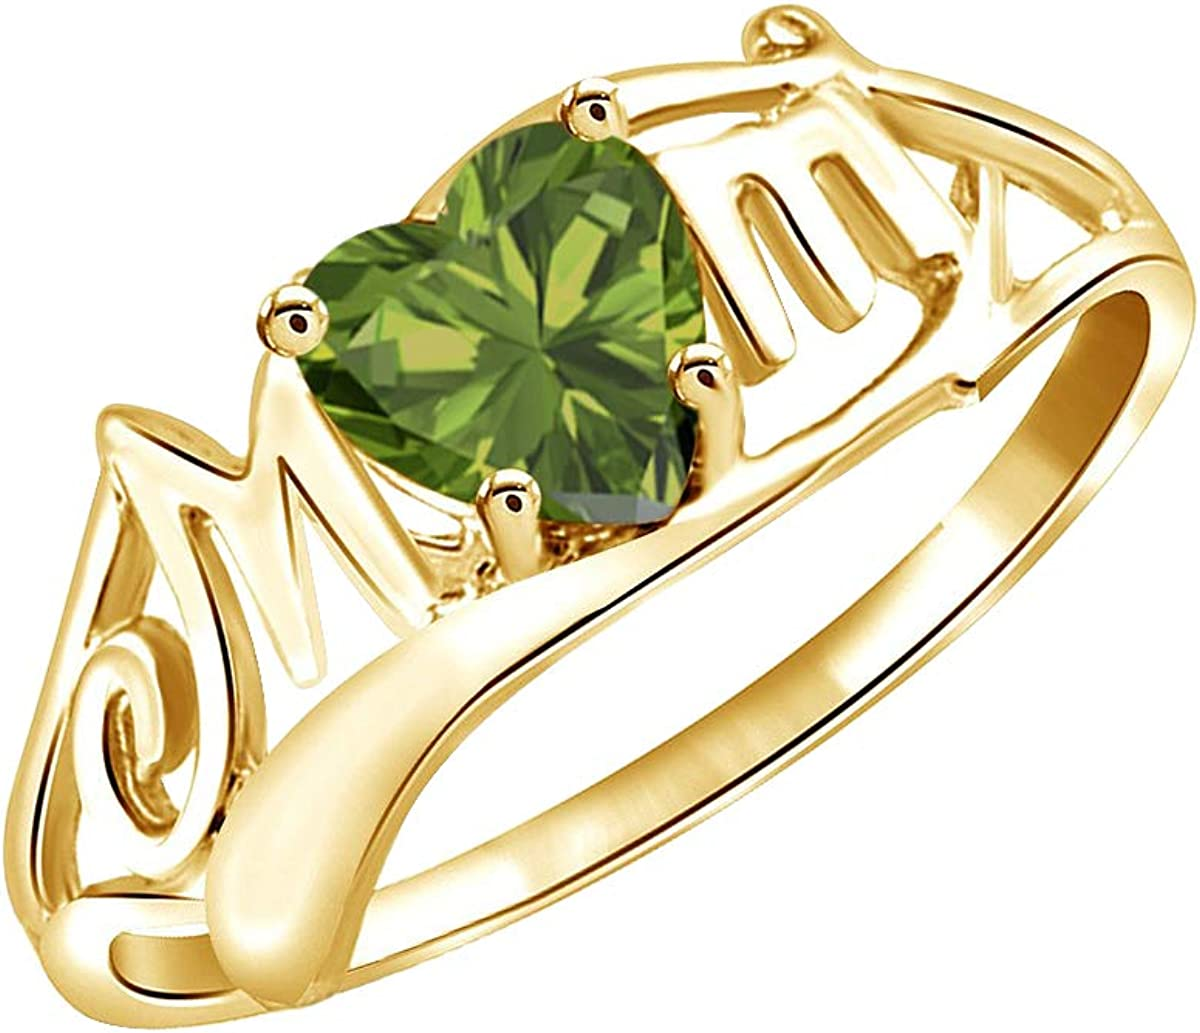 AFFY Simulated Peridot Mom Heart Ring in 14k Gold Over Sterling Silver 0.50 Cttw